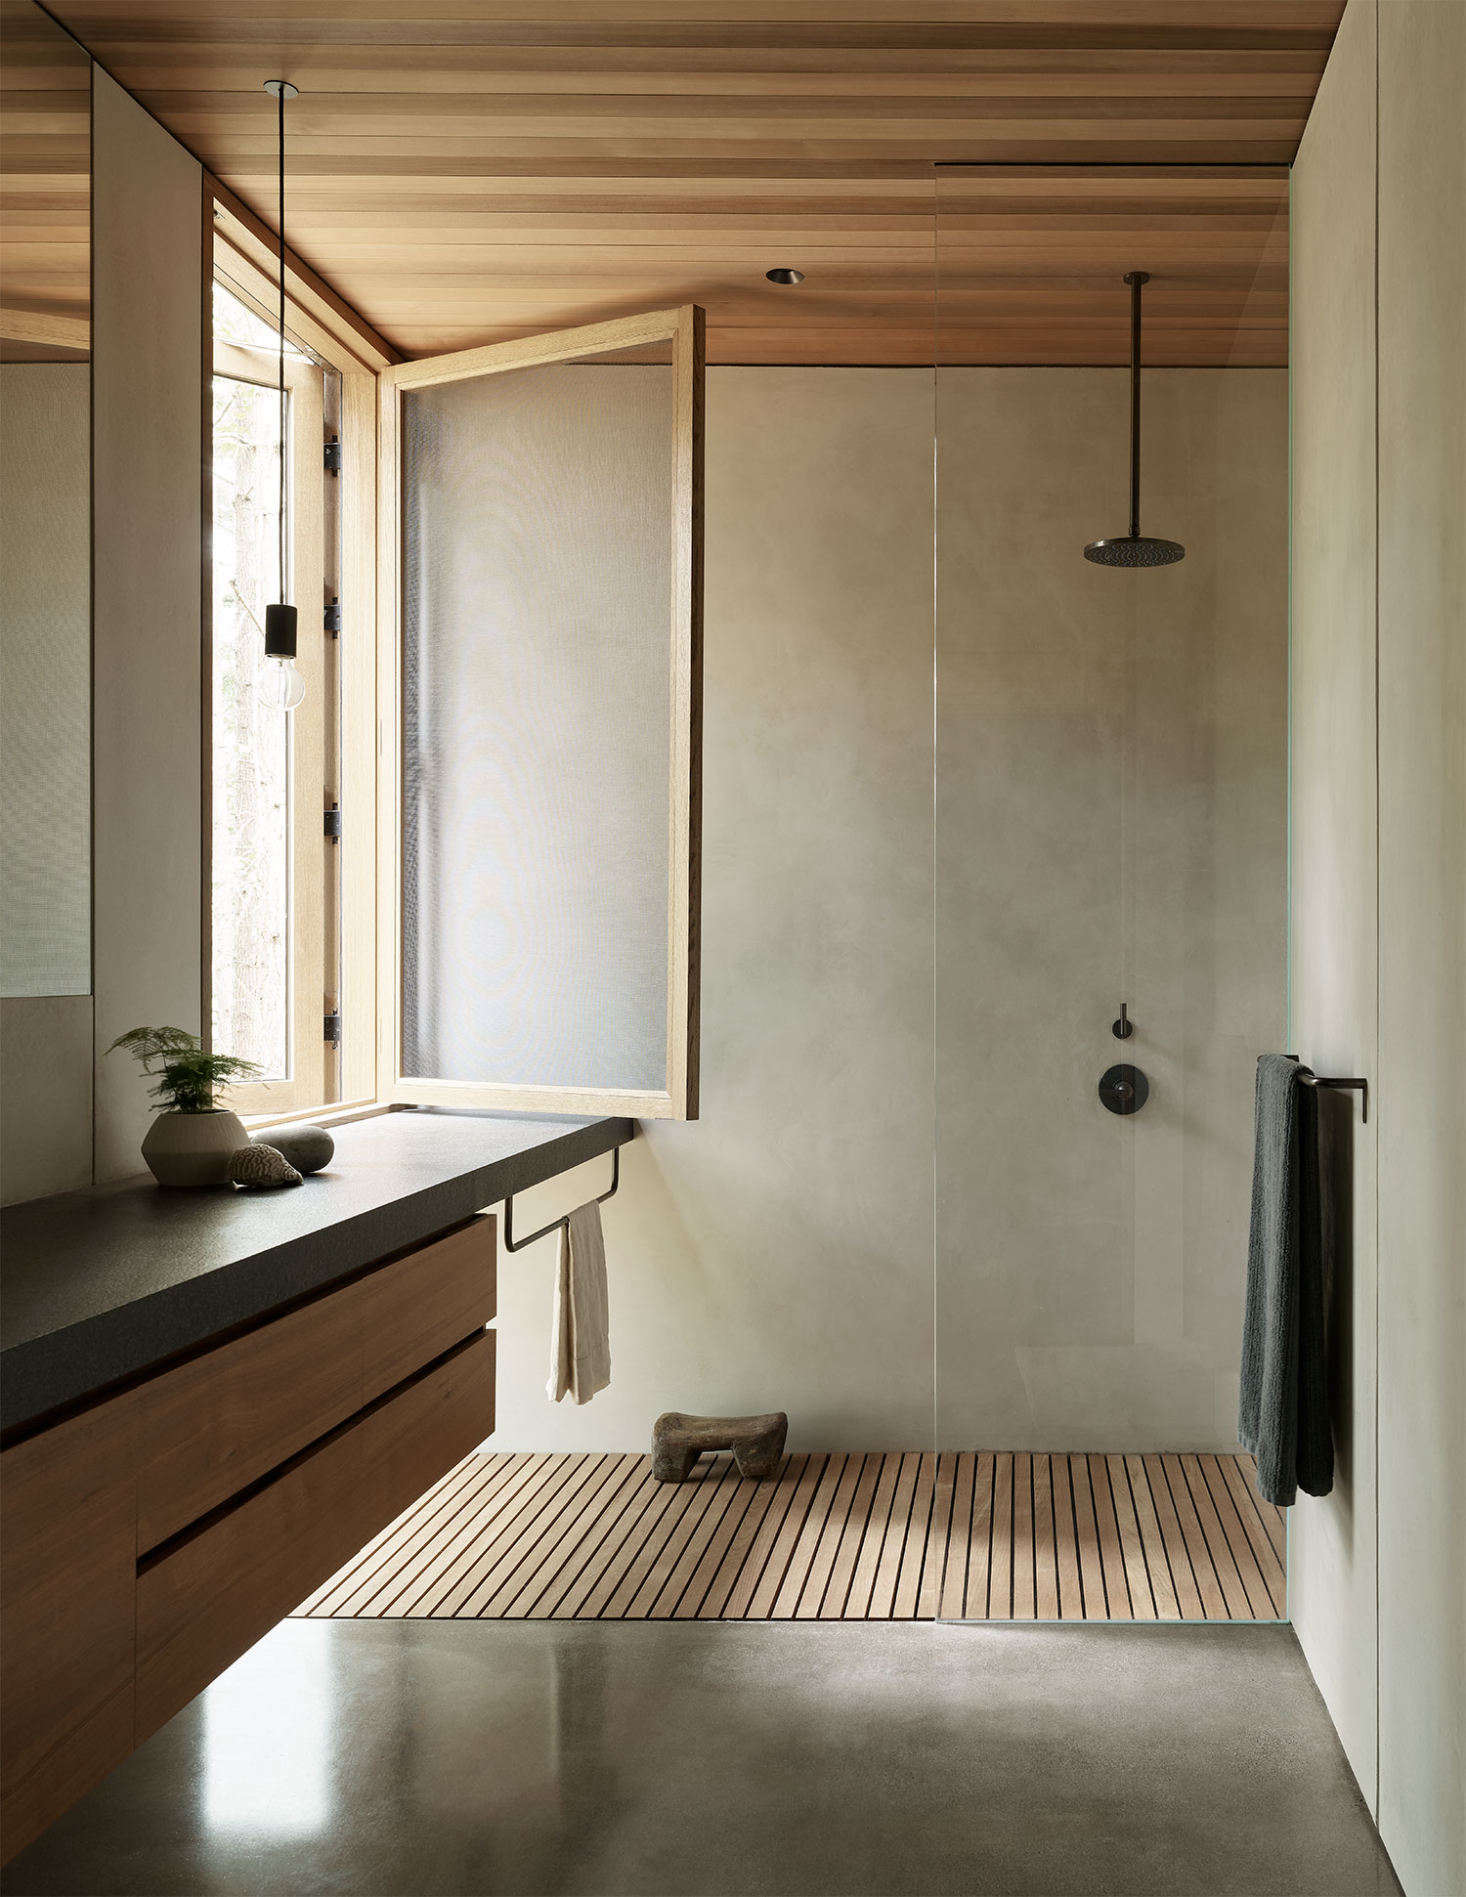 Zen perfection in the bathroom, which features a shower with a view. &#8